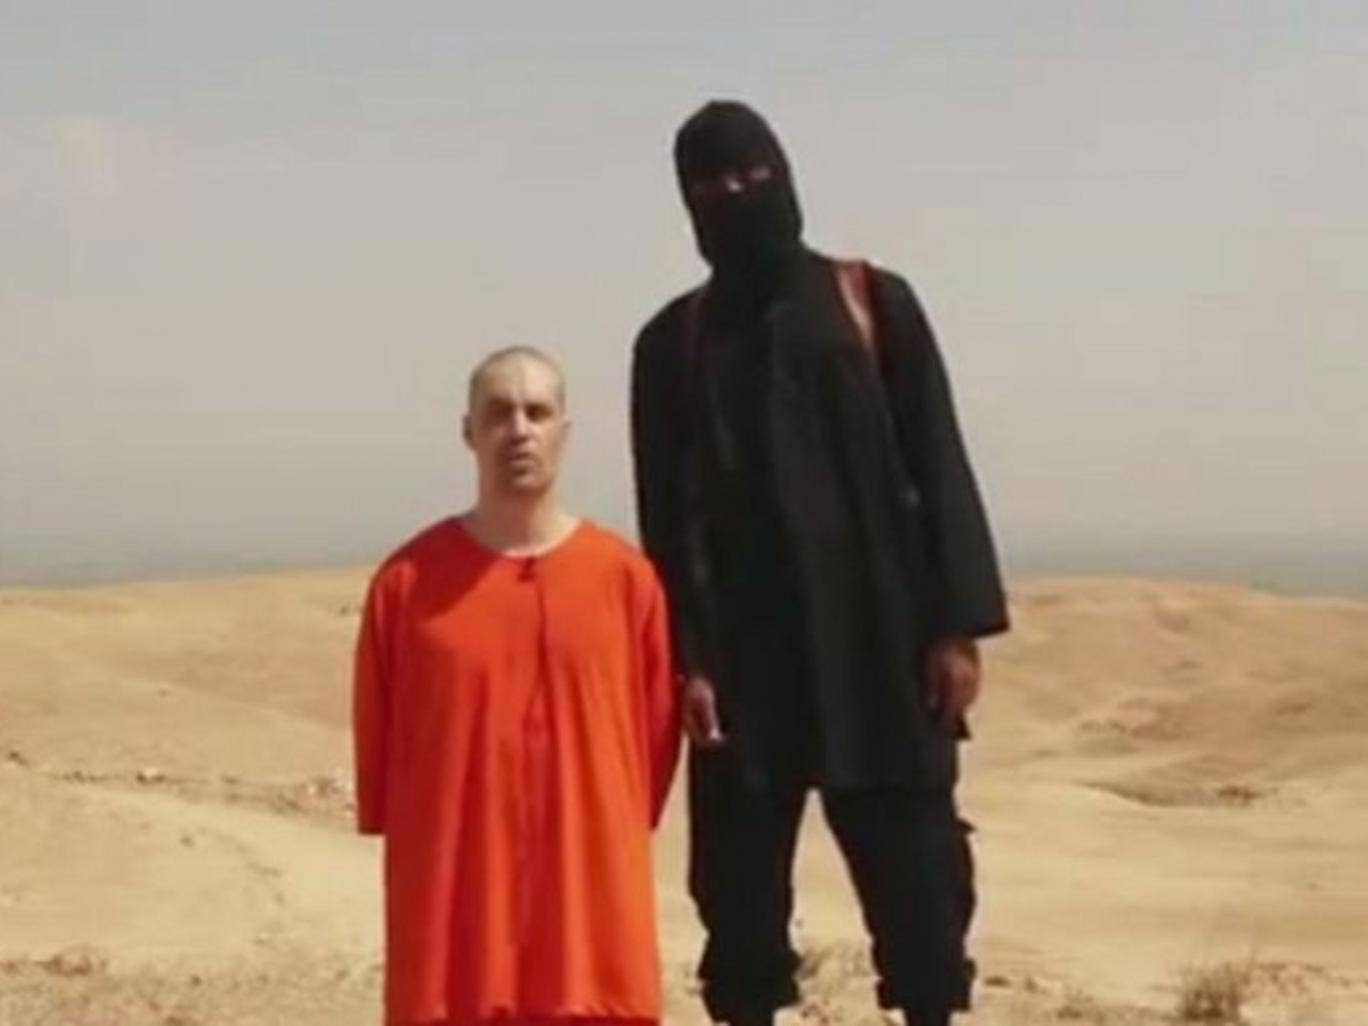 The video shows a man, thought to be James Foley, kneeling in front of a black-clad militant